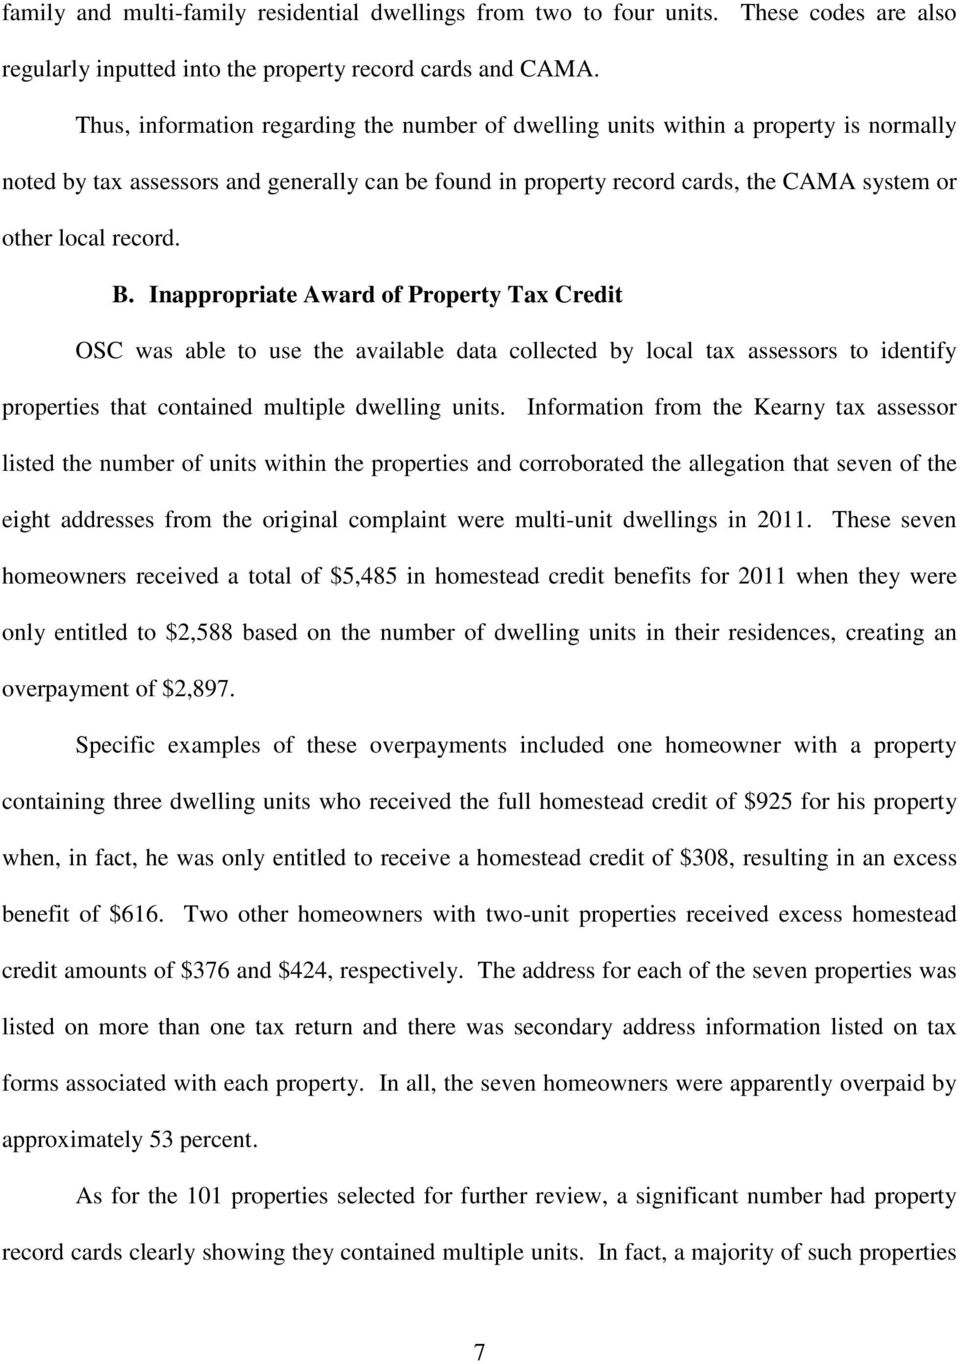 record. B. Inappropriate Award of Property Tax Credit OSC was able to use the available data collected by local tax assessors to identify properties that contained multiple dwelling units.